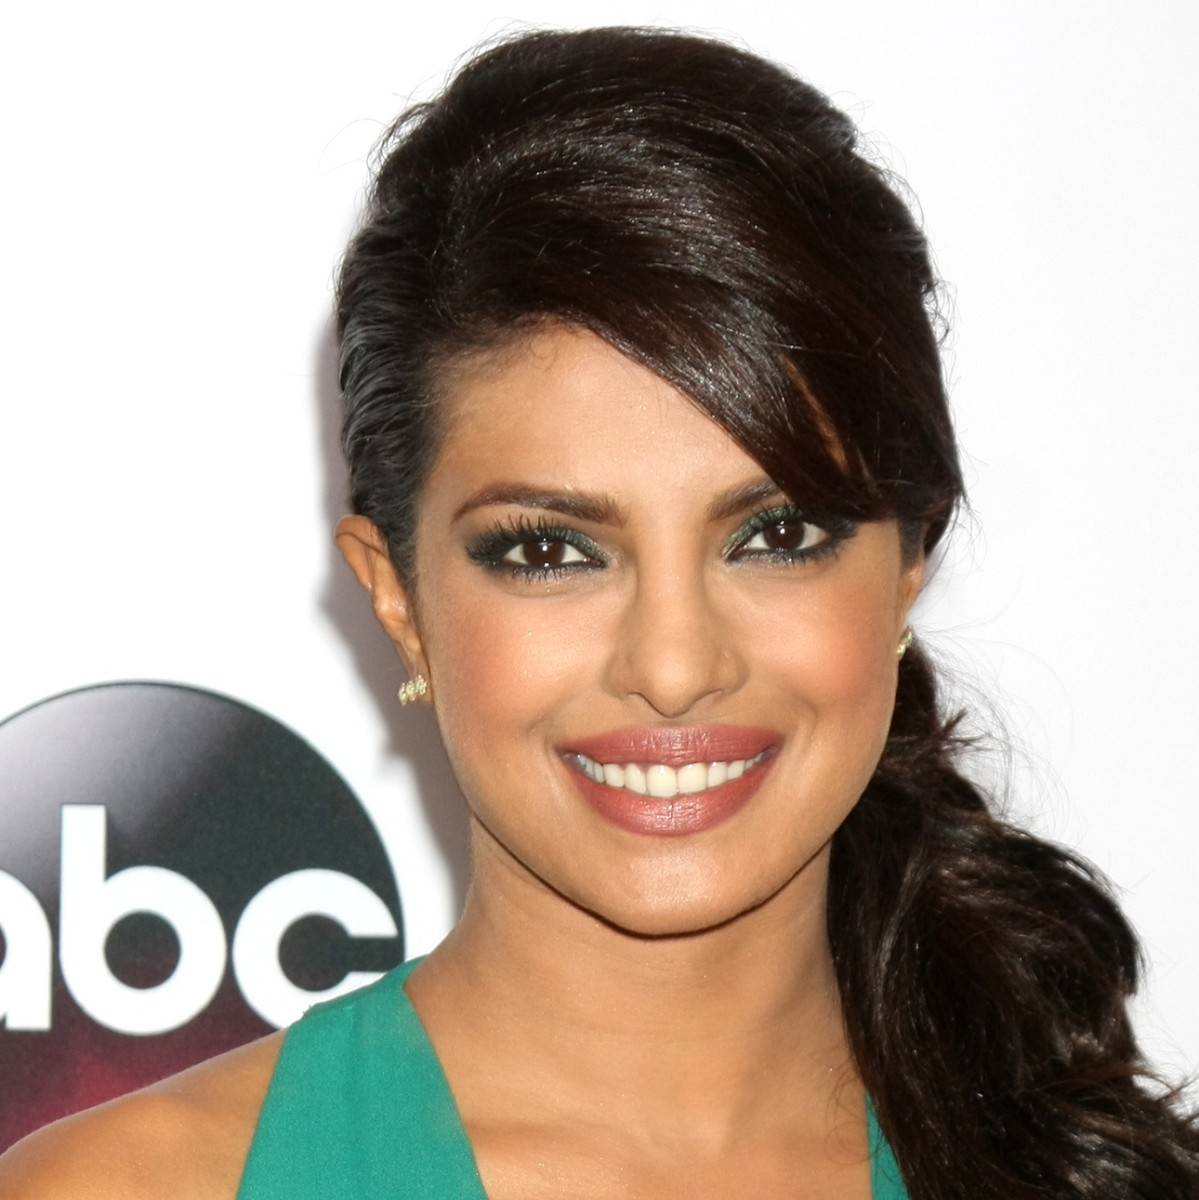 Priyanka Chopra escaped New York terror attack that killed 8